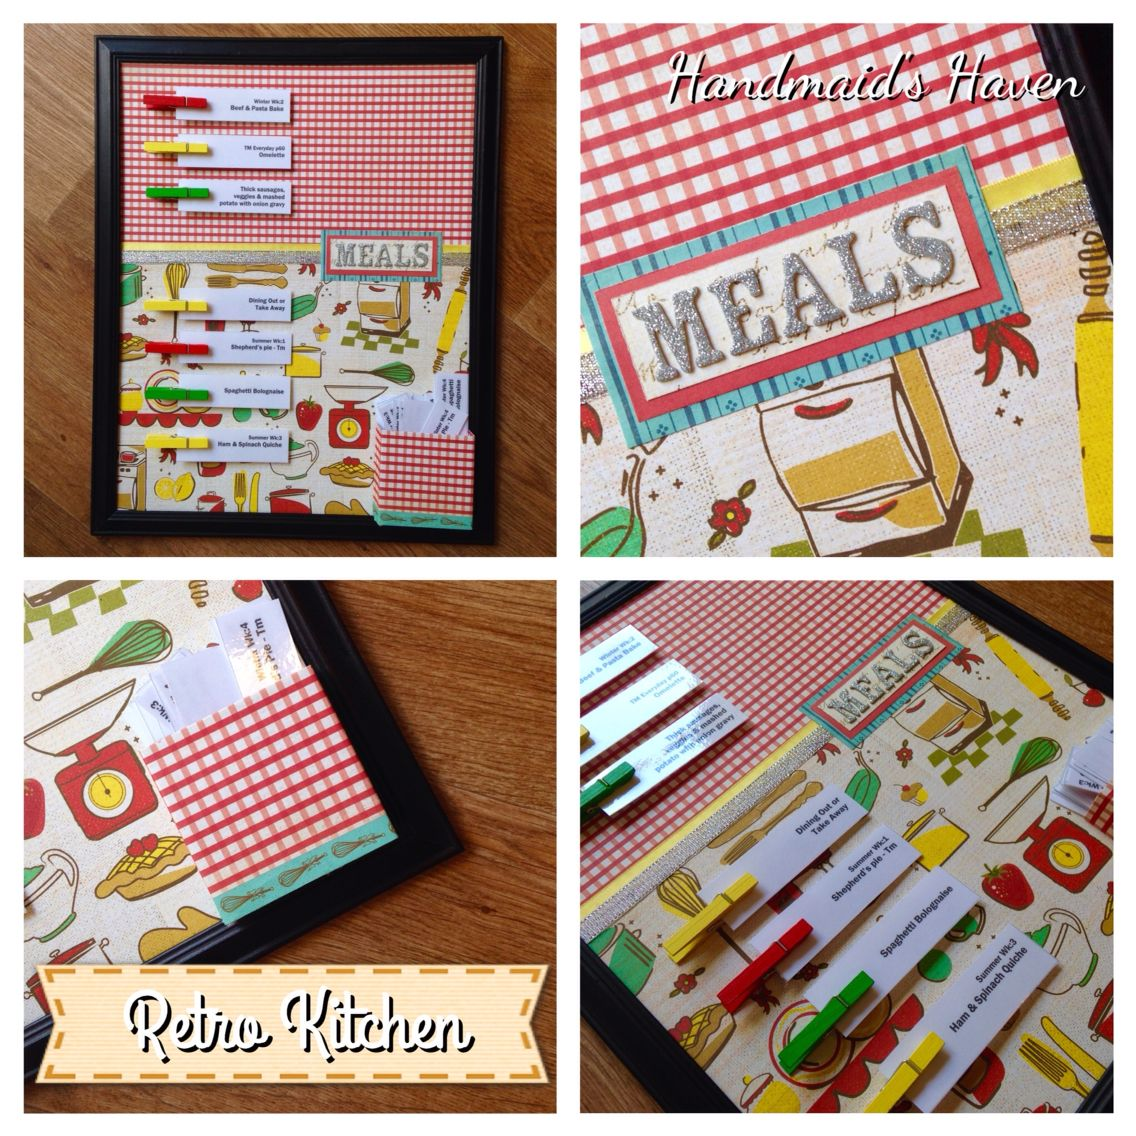 'Retro Kitchen' Meal Planner. $50 + postage or local pick up Springfield Lakes. Visit my FB page 'Handmaid's Haven' for more info or to place an order.